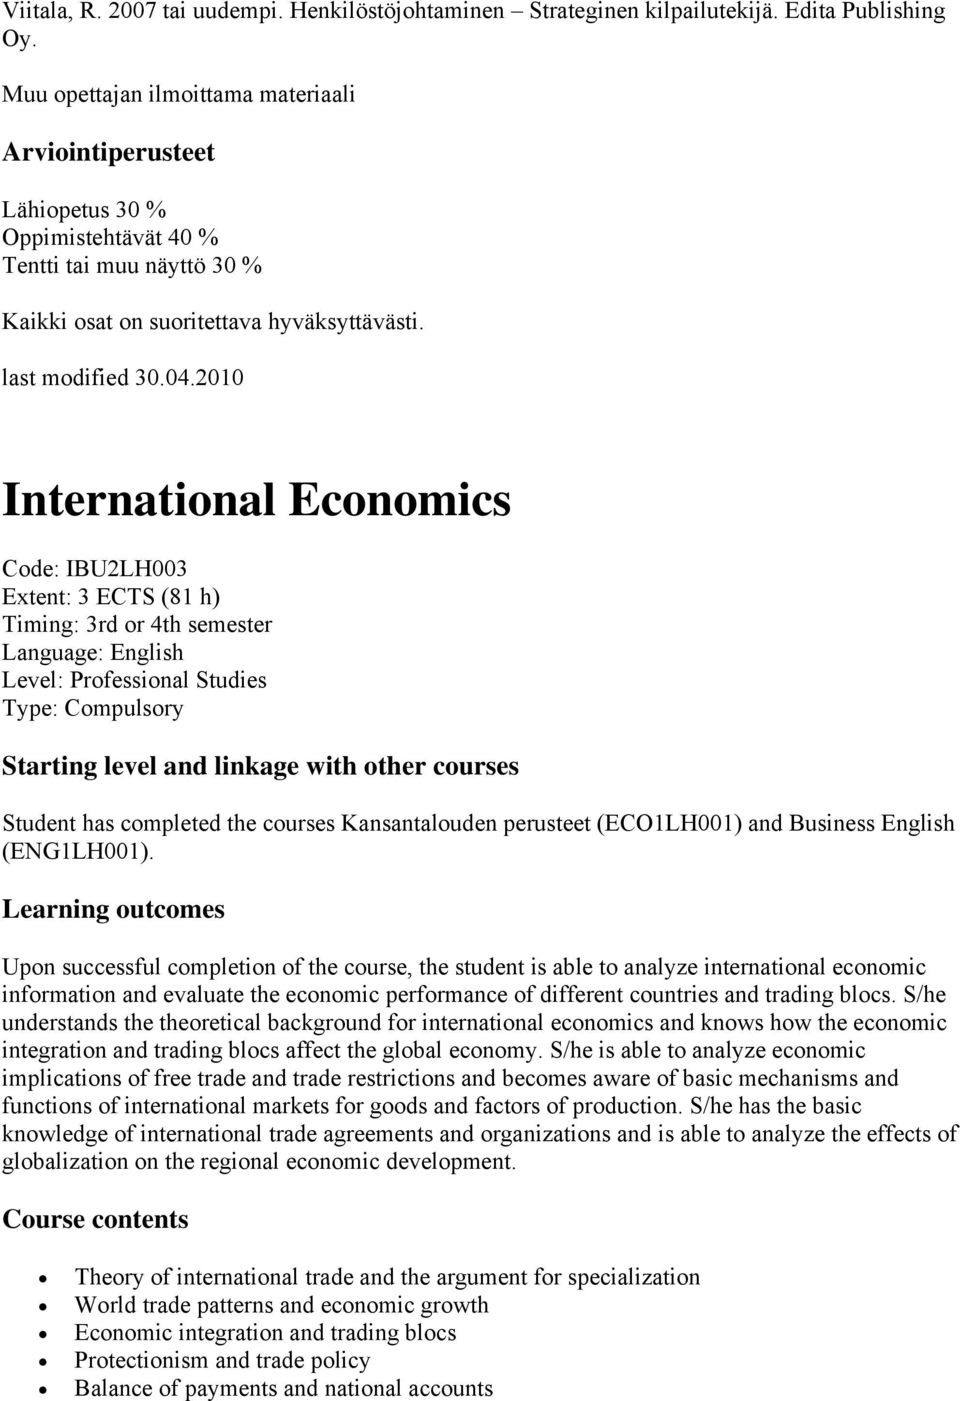 2010 International Economics Code: IBU2LH003 Extent: 3 ECTS (81 h) Timing: 3rd or 4th semester Language: English Level: Professional Studies Type: Compulsory Starting level and linkage with other